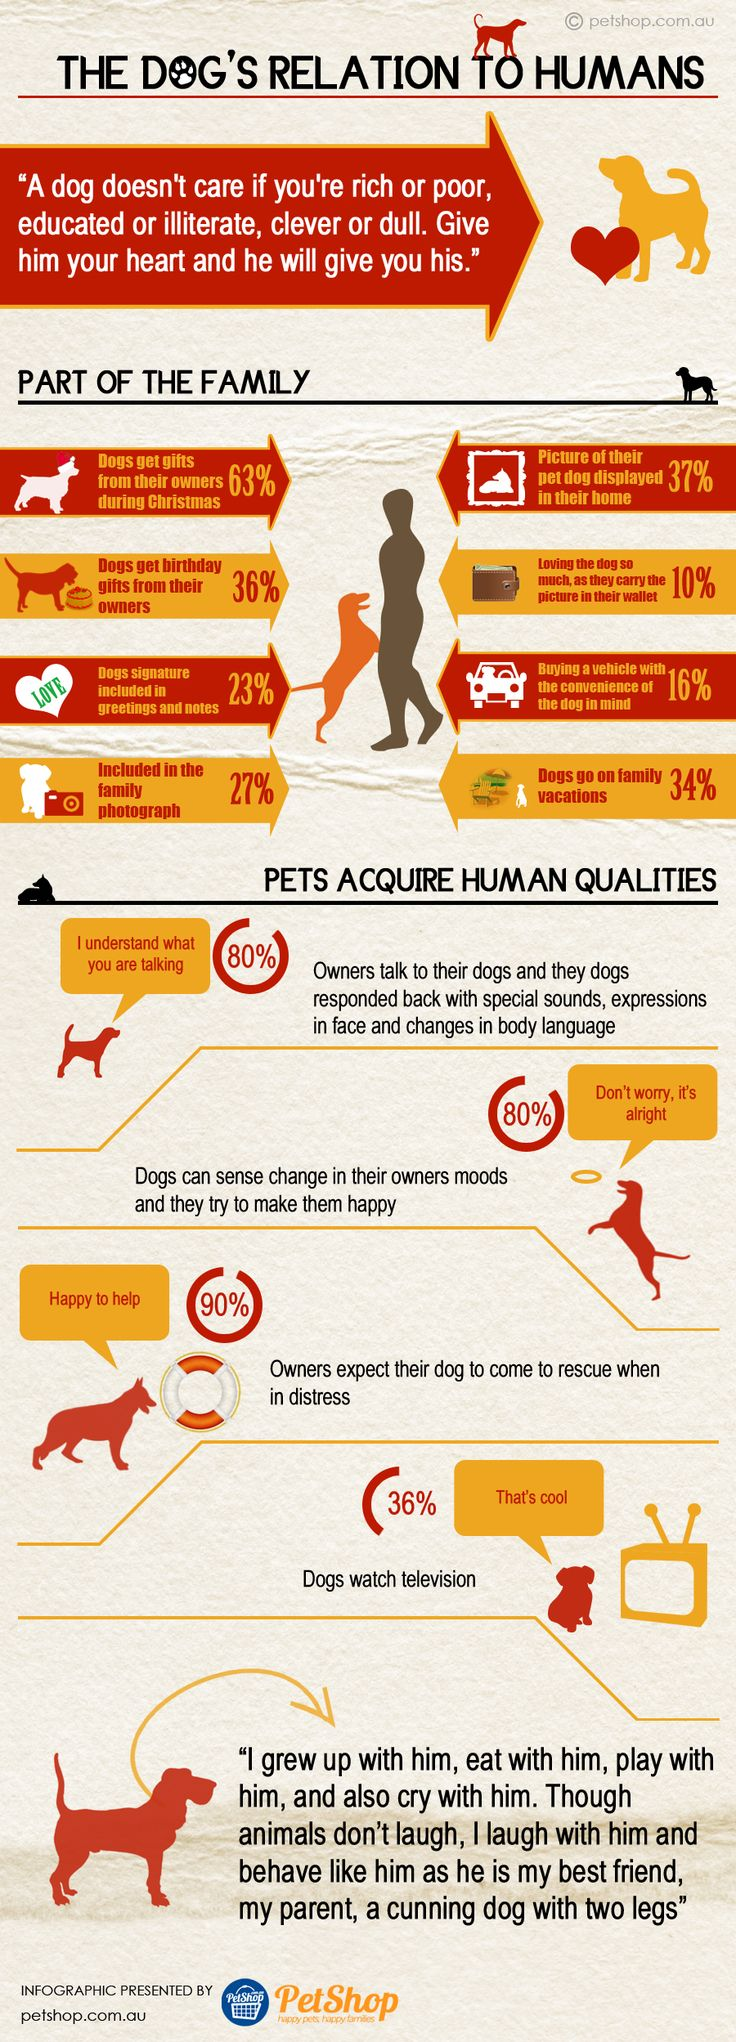 Infographic on the Dog's Relationship with Humans